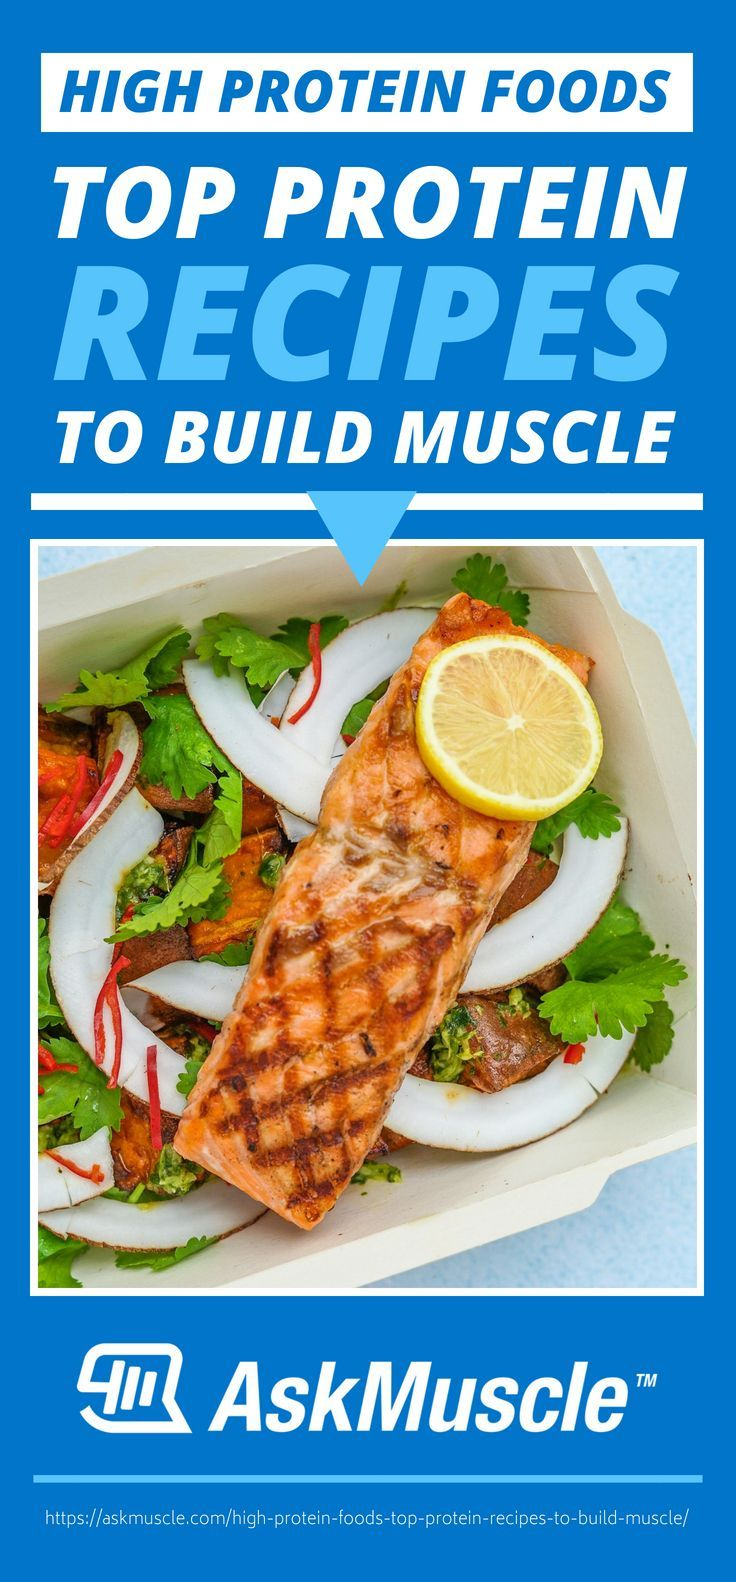 High Protein Foods Top Protein Recipes To Build Muscle